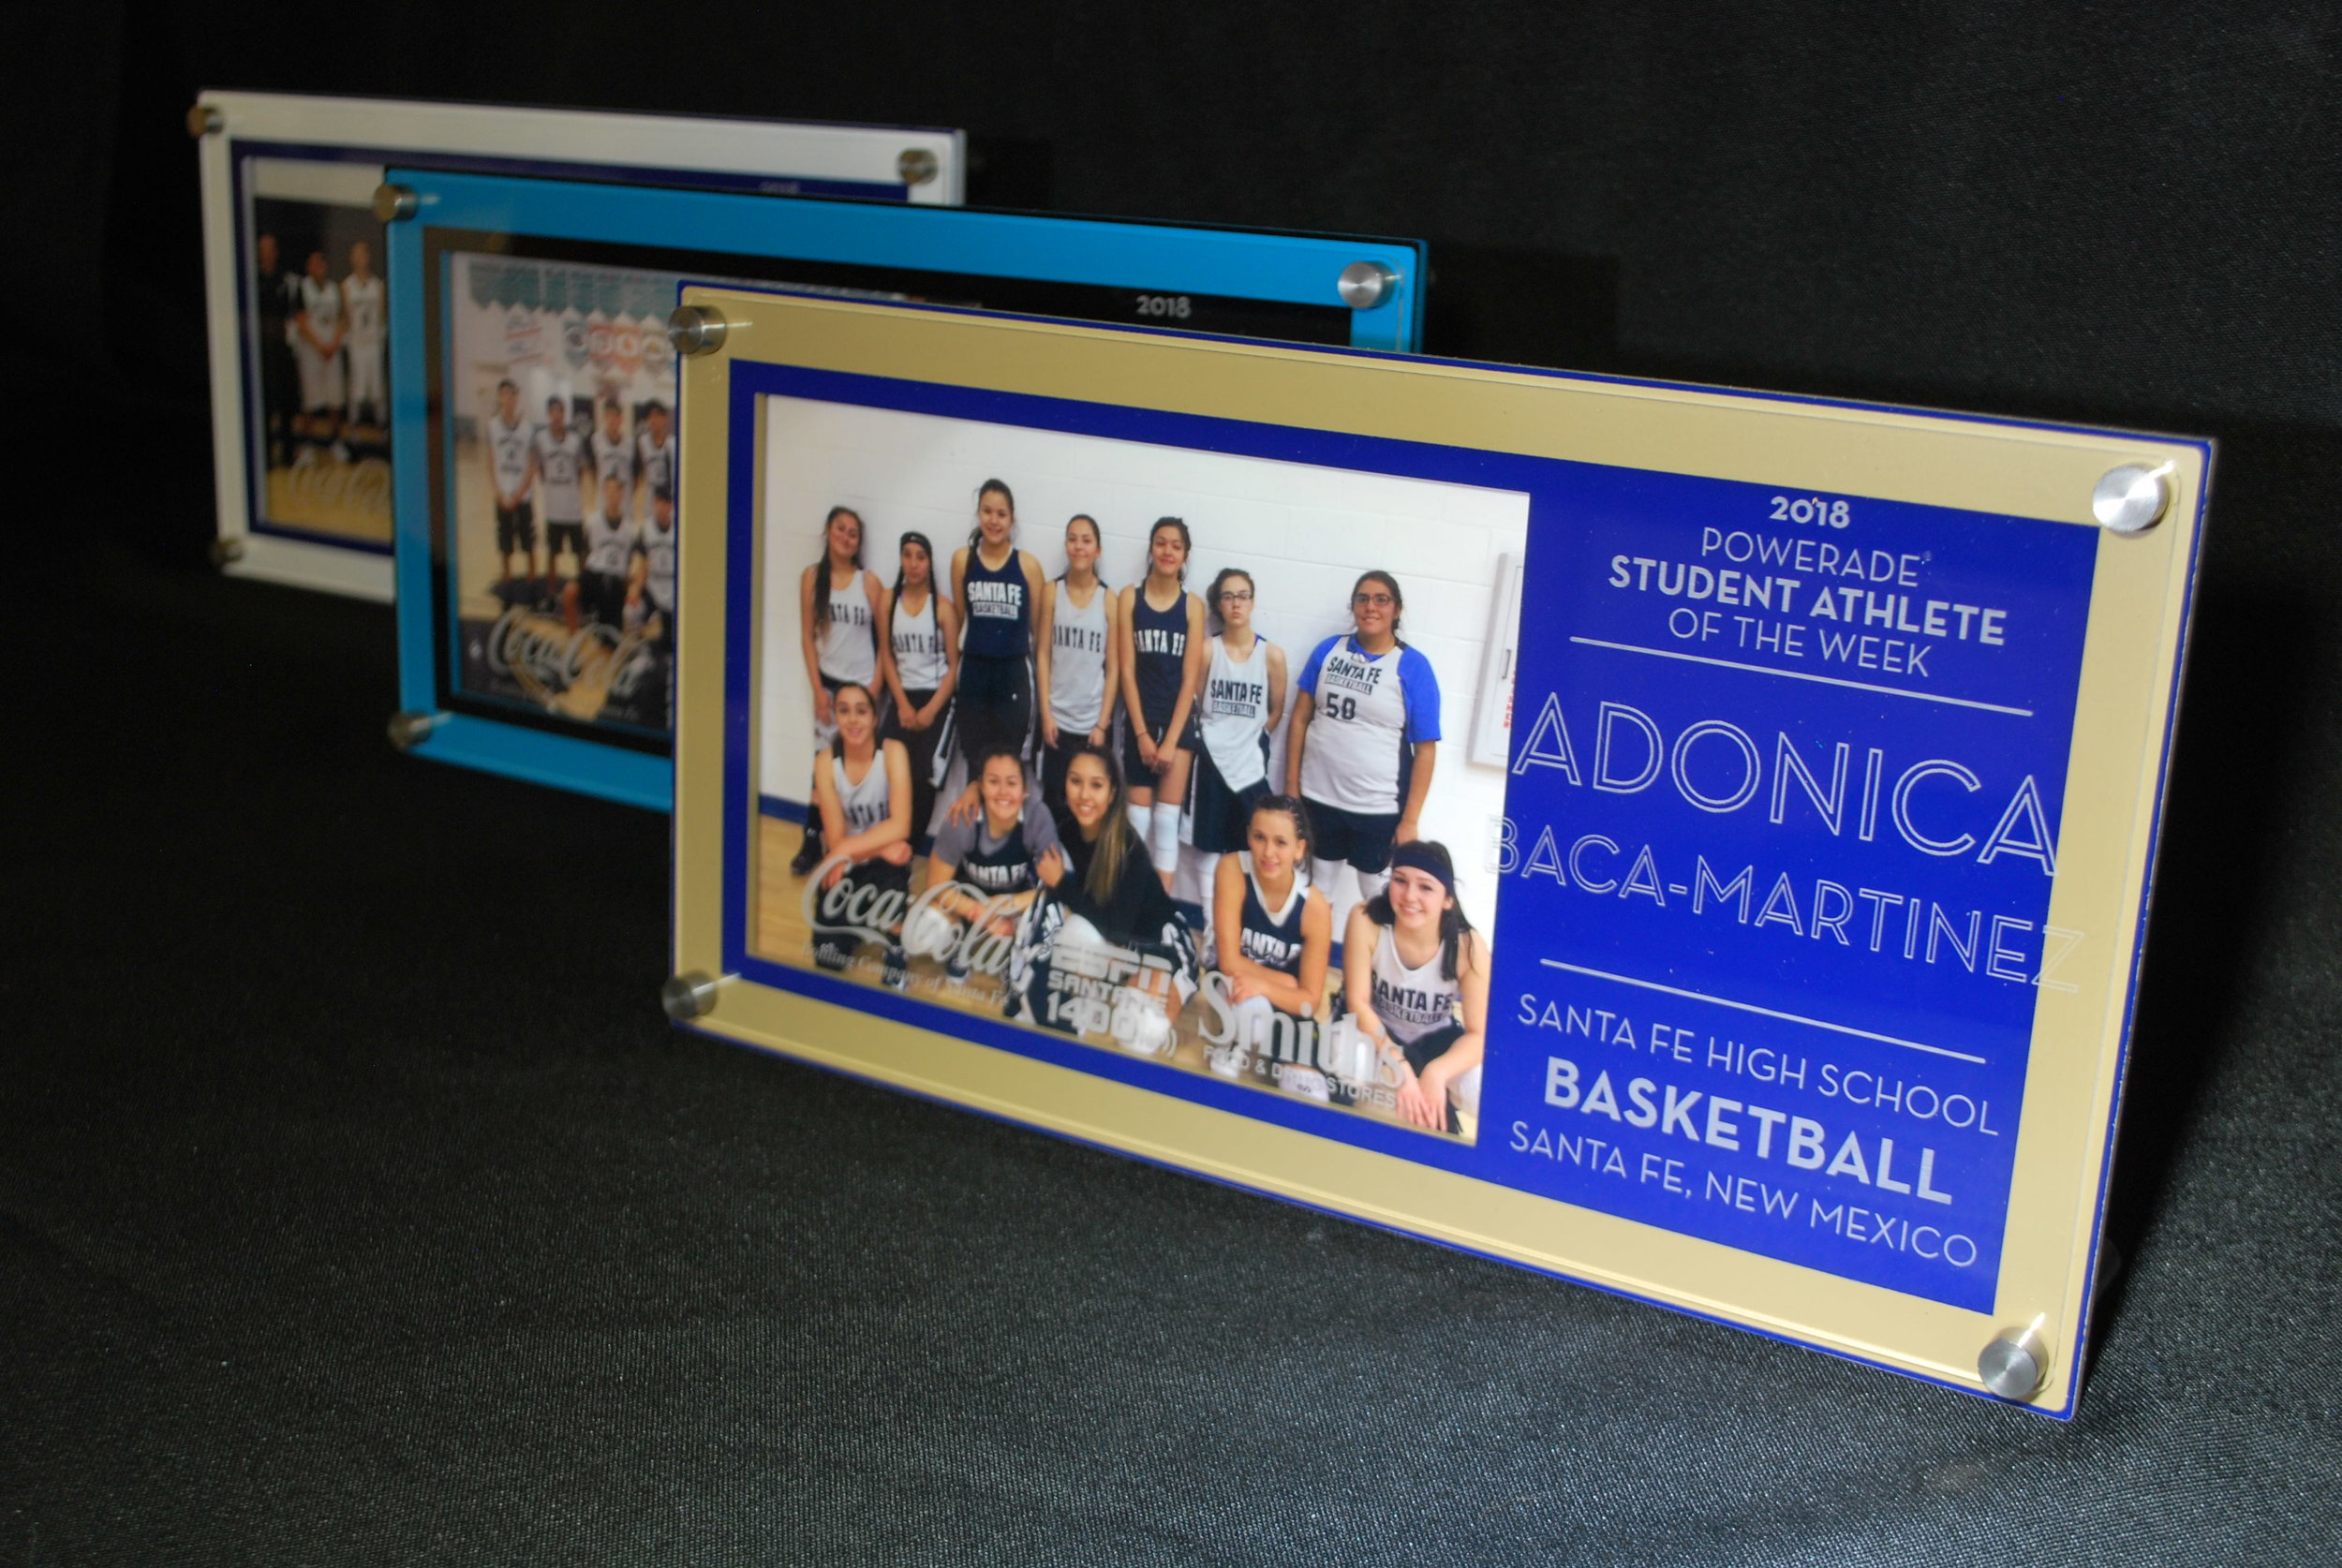 5x7 landscape photo frame - Powerade Student/Athlete of the Week Frame/Award, custom etch features accomplishment, name, sport, and school of athlete, year and title of award.  Contact us for pricing information.